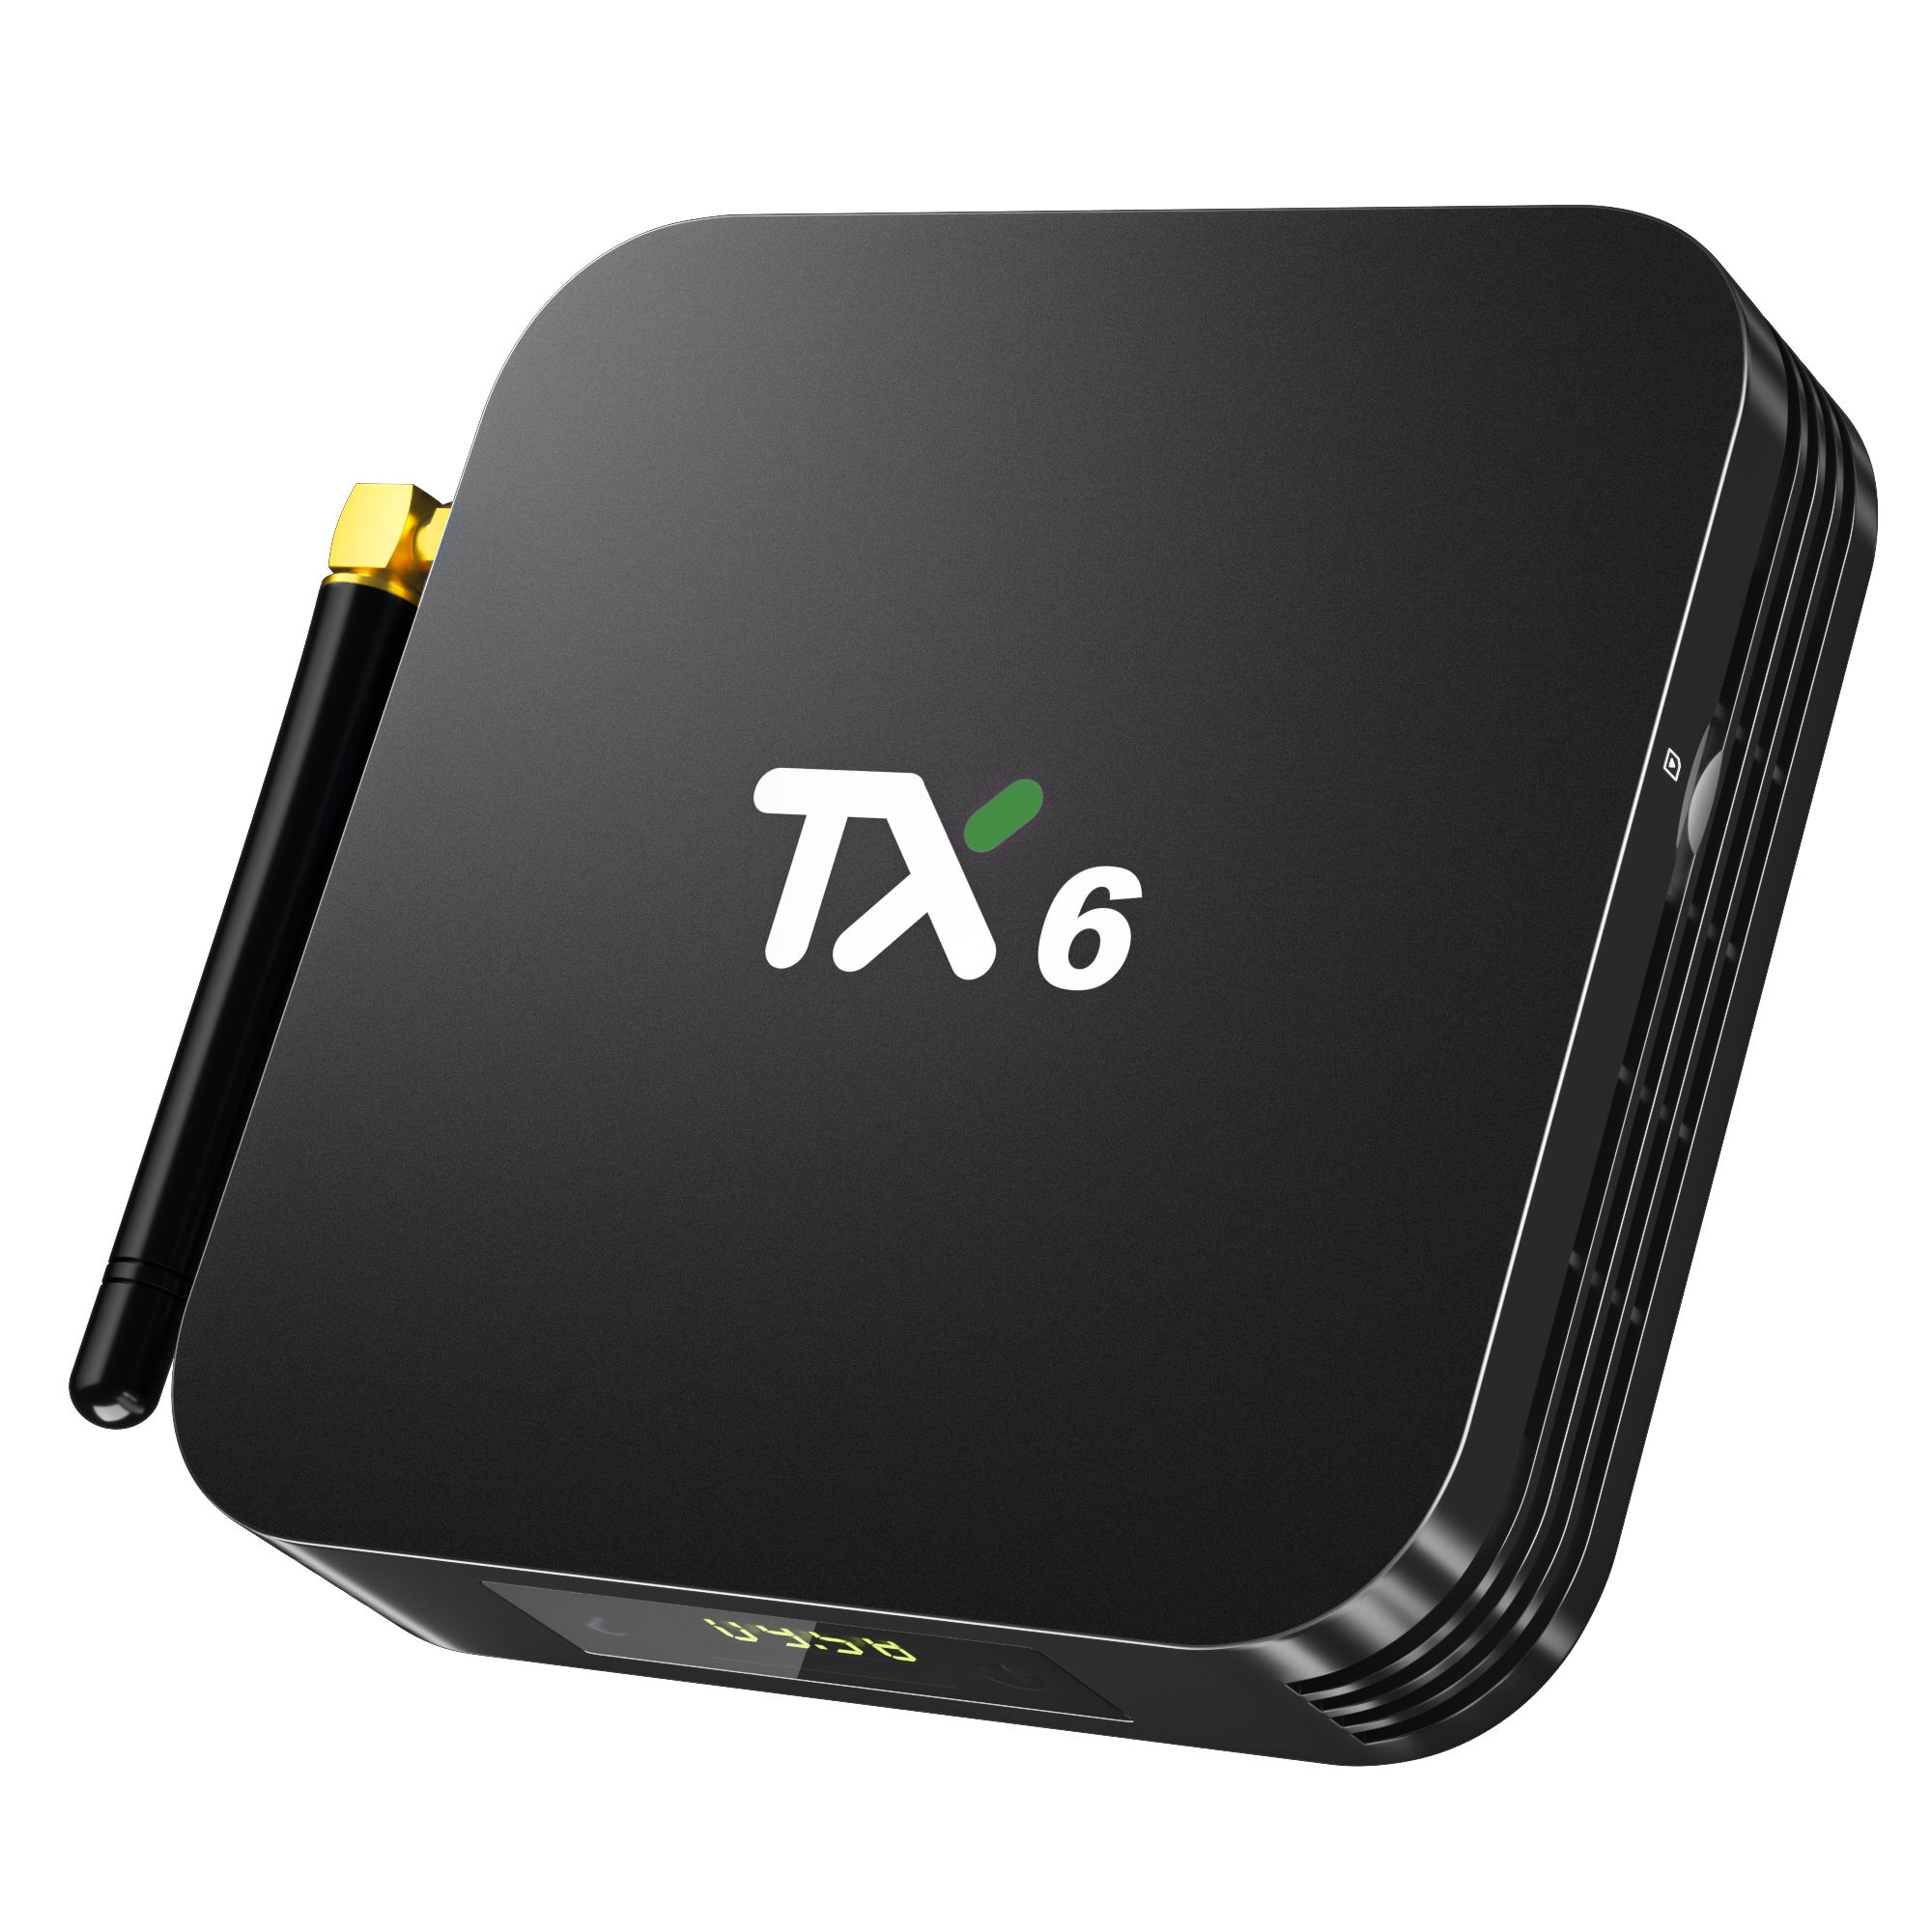 Uitstekende Kwaliteit 2.4G + 5G TX6 H6 Octa Core Ip <span class=keywords><strong>Tv</strong></span> Smart Ott 4 K 4 Gb 32gb Smart Tanix Android 9.0 <span class=keywords><strong>Tv</strong></span> <span class=keywords><strong>Box</strong></span>